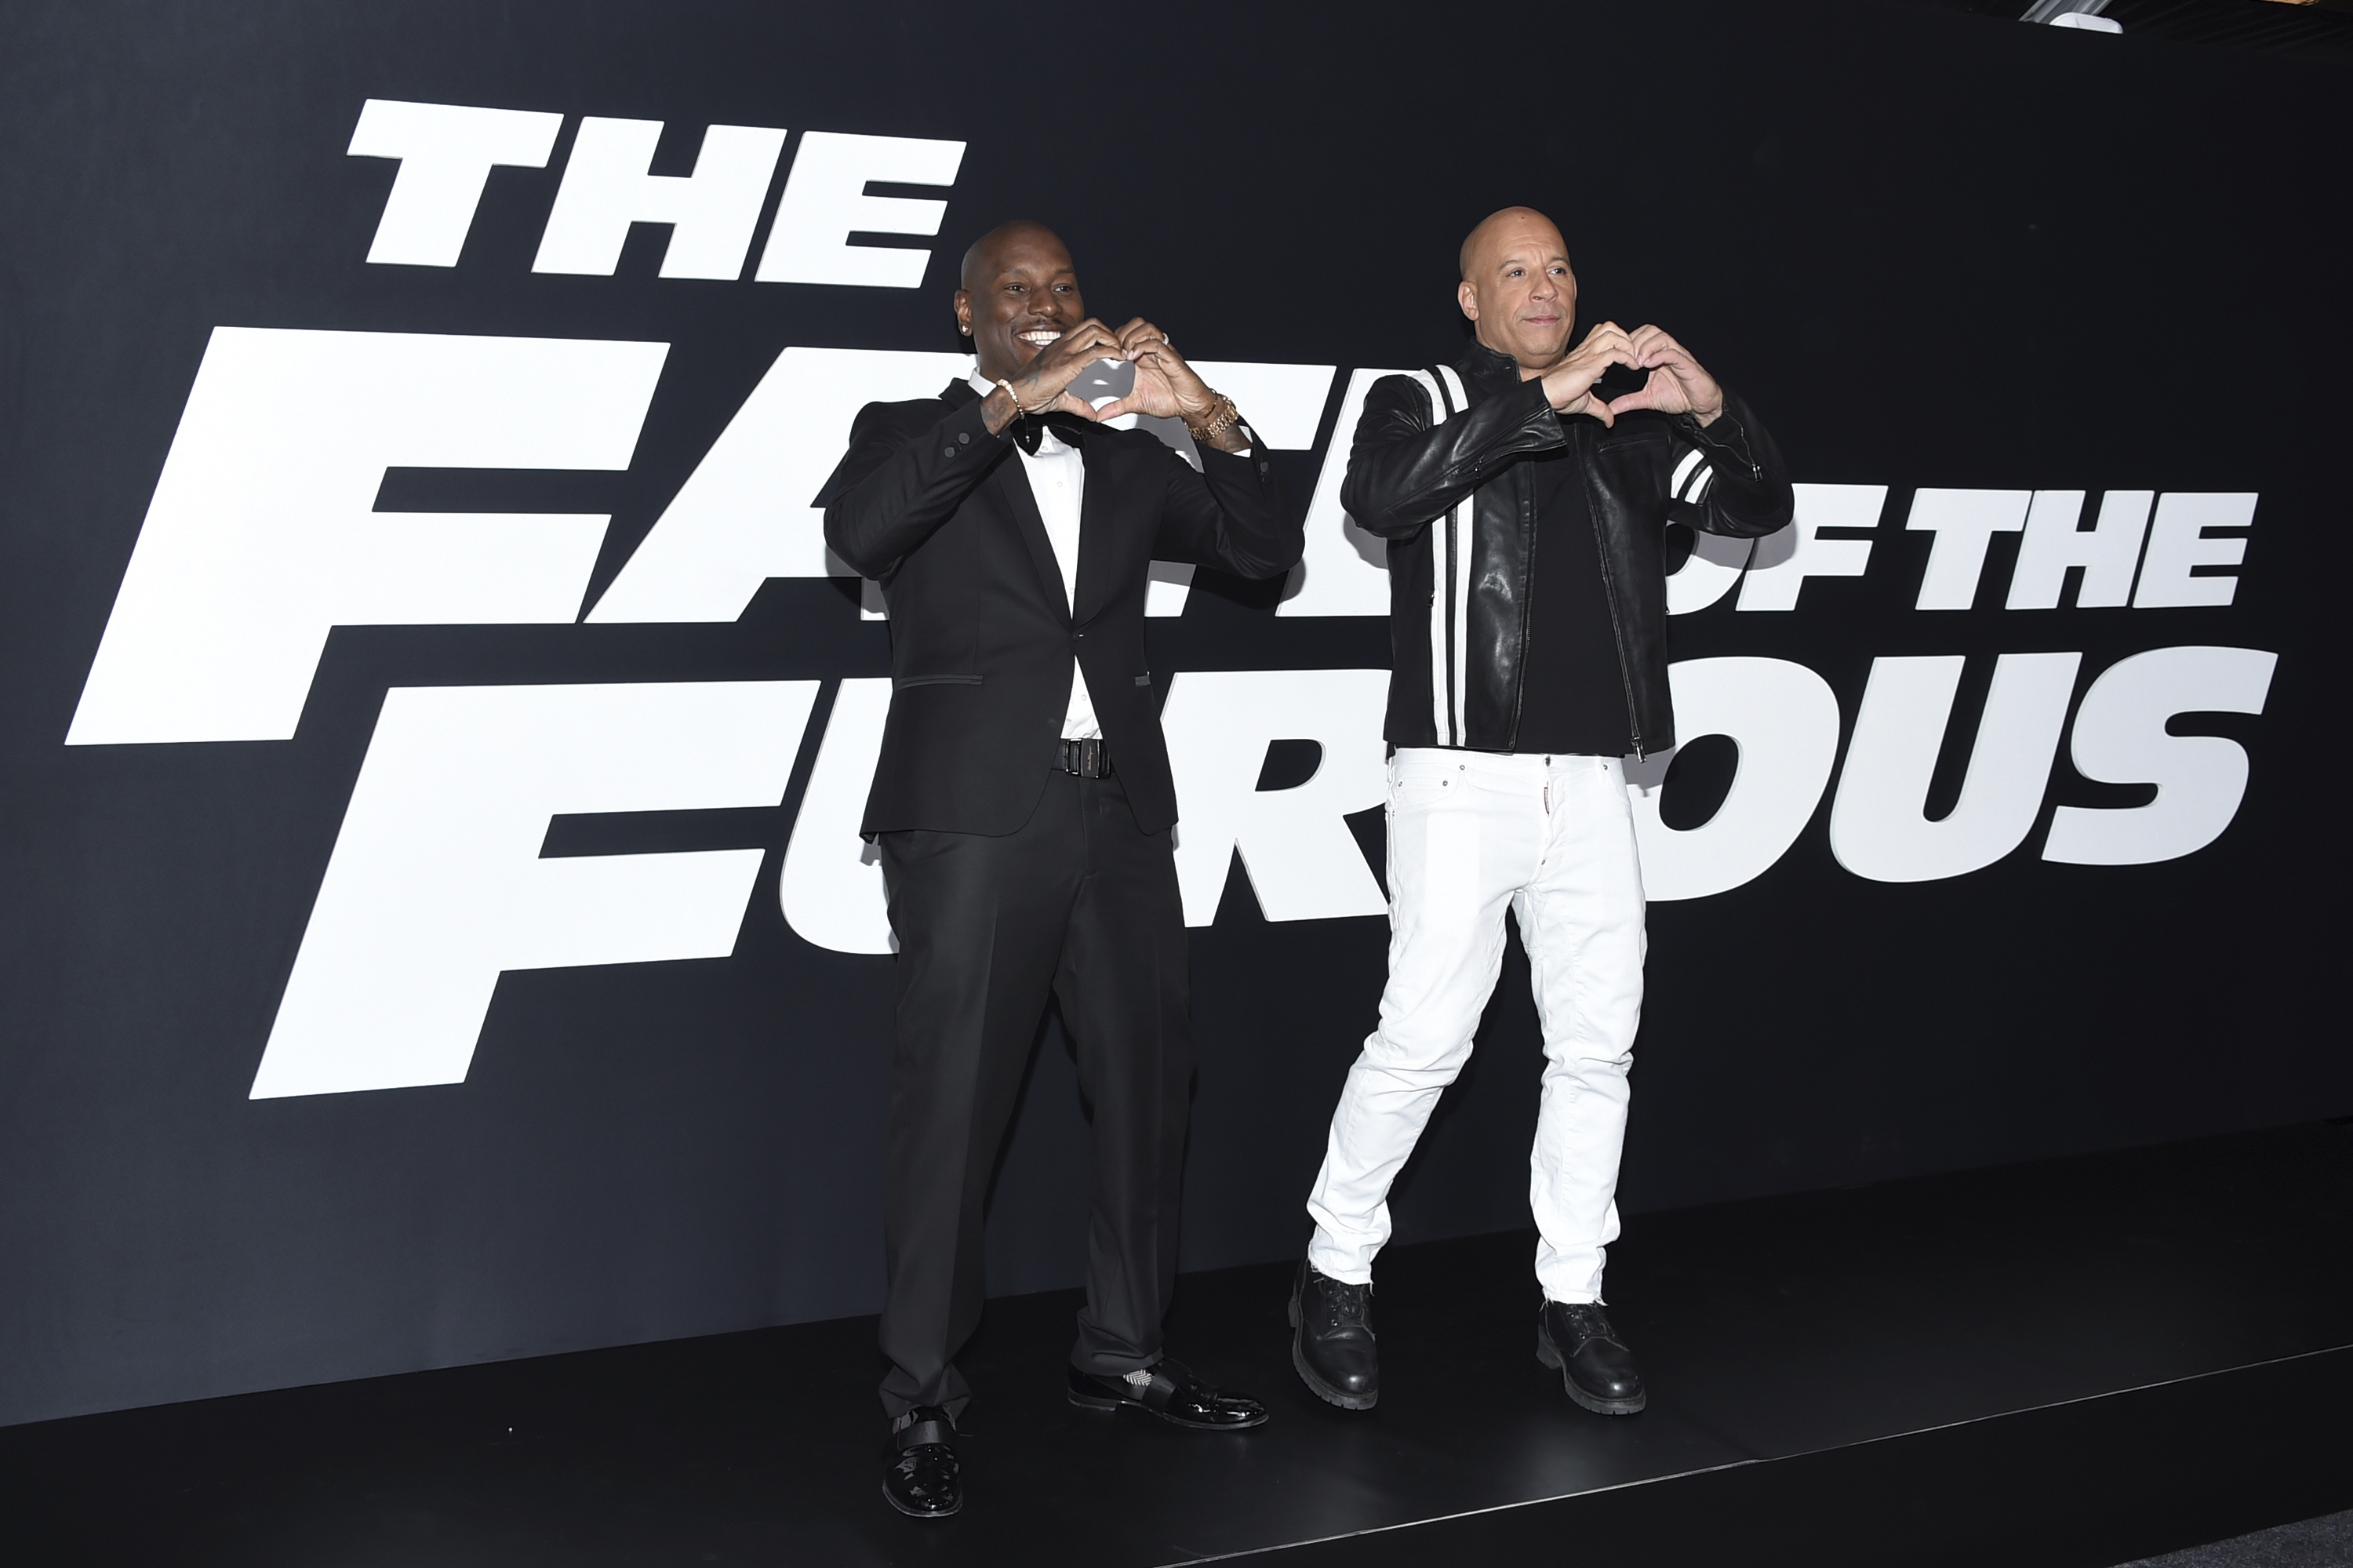 """Tyrese Gibson, left, and Vin Diesel attend the world premiere of Universal Pictures' """"The Fate of the Furious"""" at Radio City Music Hall on Saturday, April 8, 2017, in New York. (Photo by Evan Agostini/Invision/AP)"""